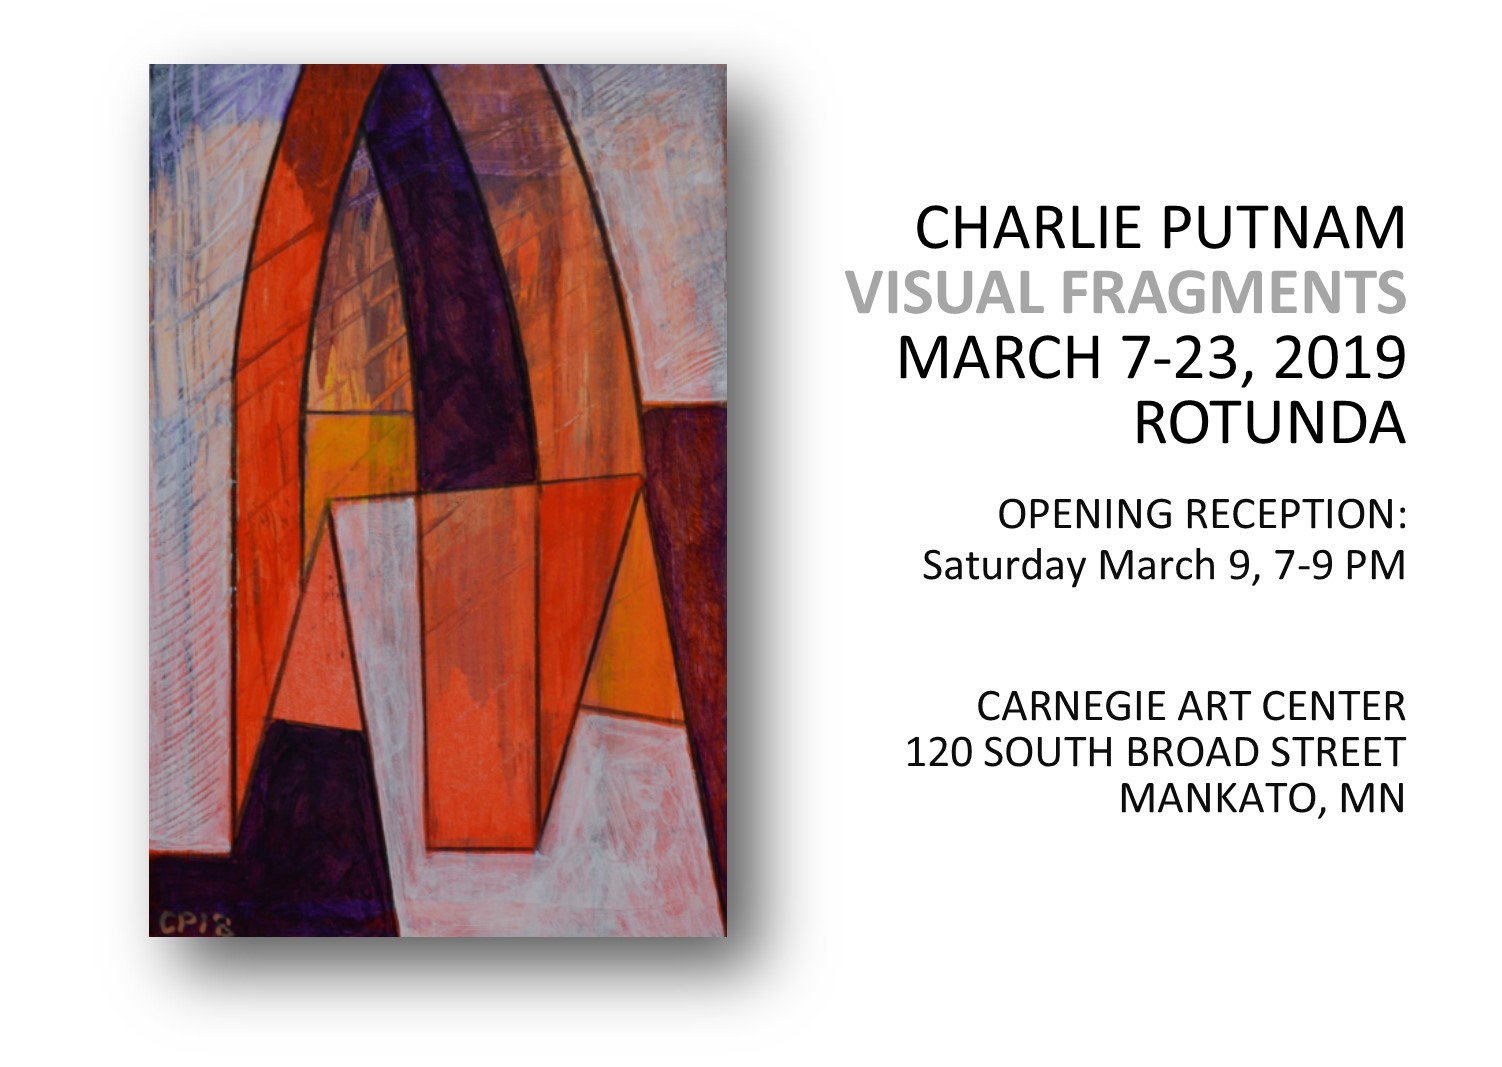 Exhibit - Charlie Putnam, Visual Fragments